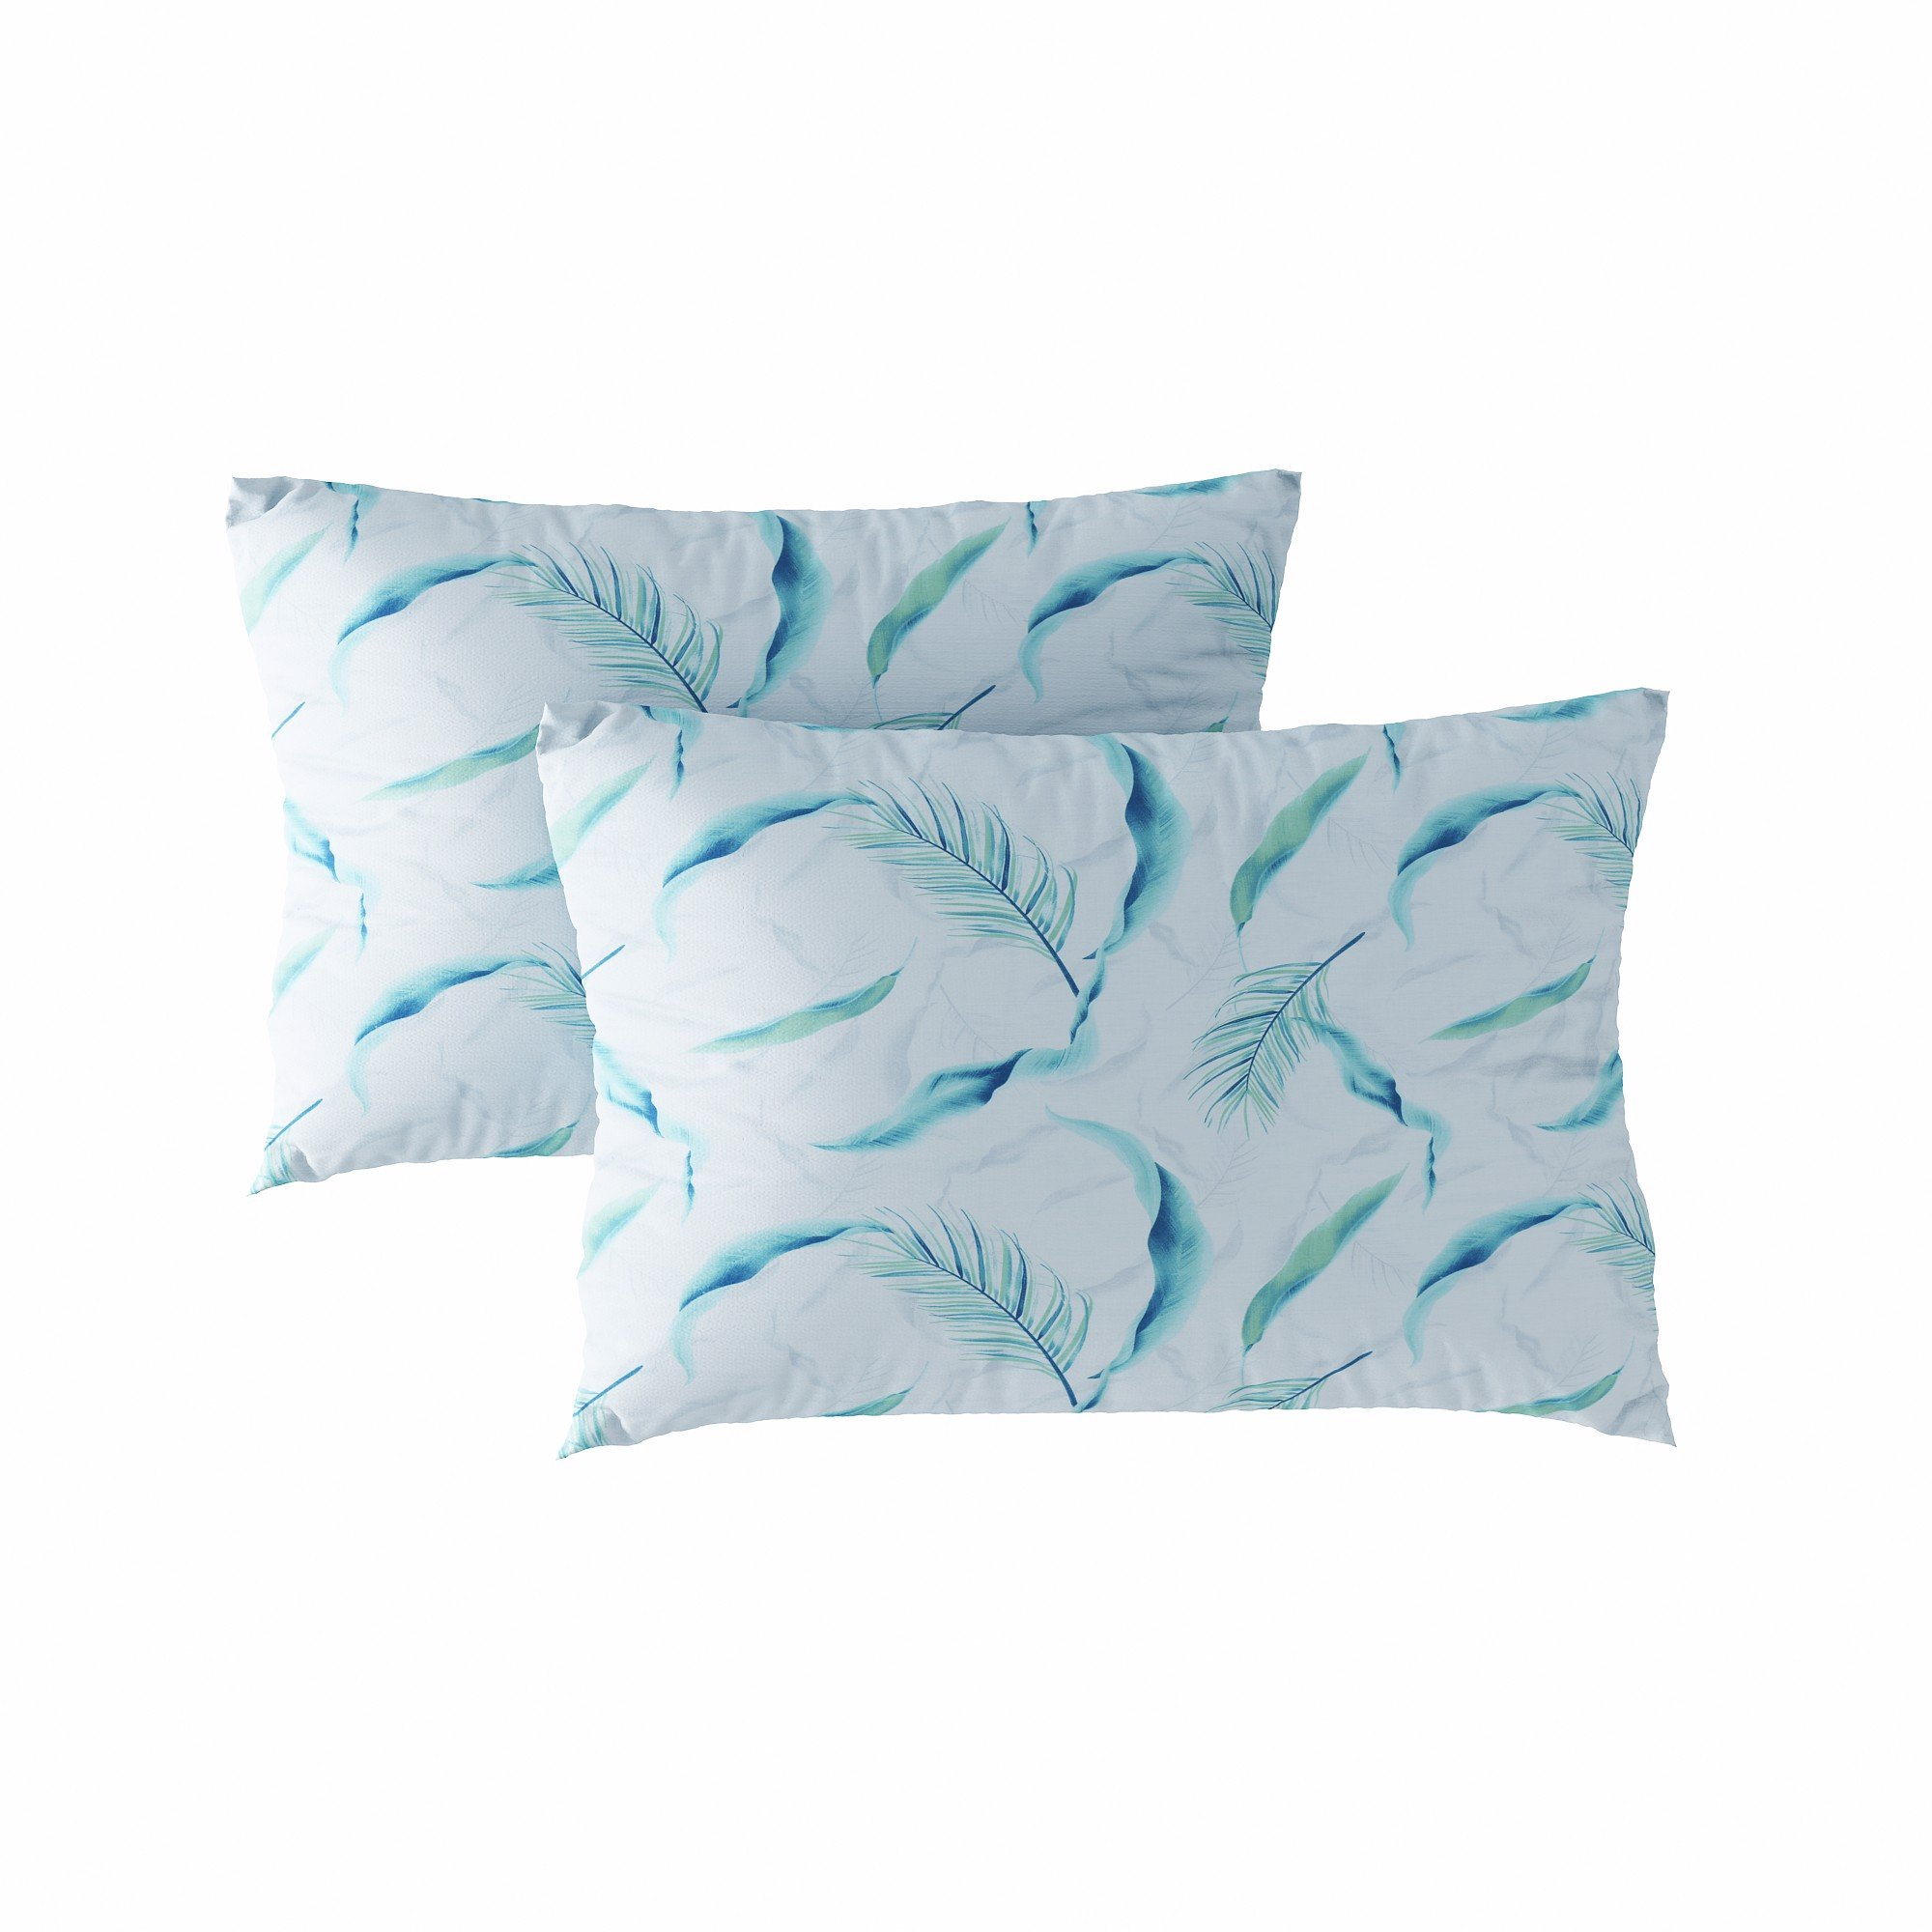 Pillow case 129 Blue palm leaves